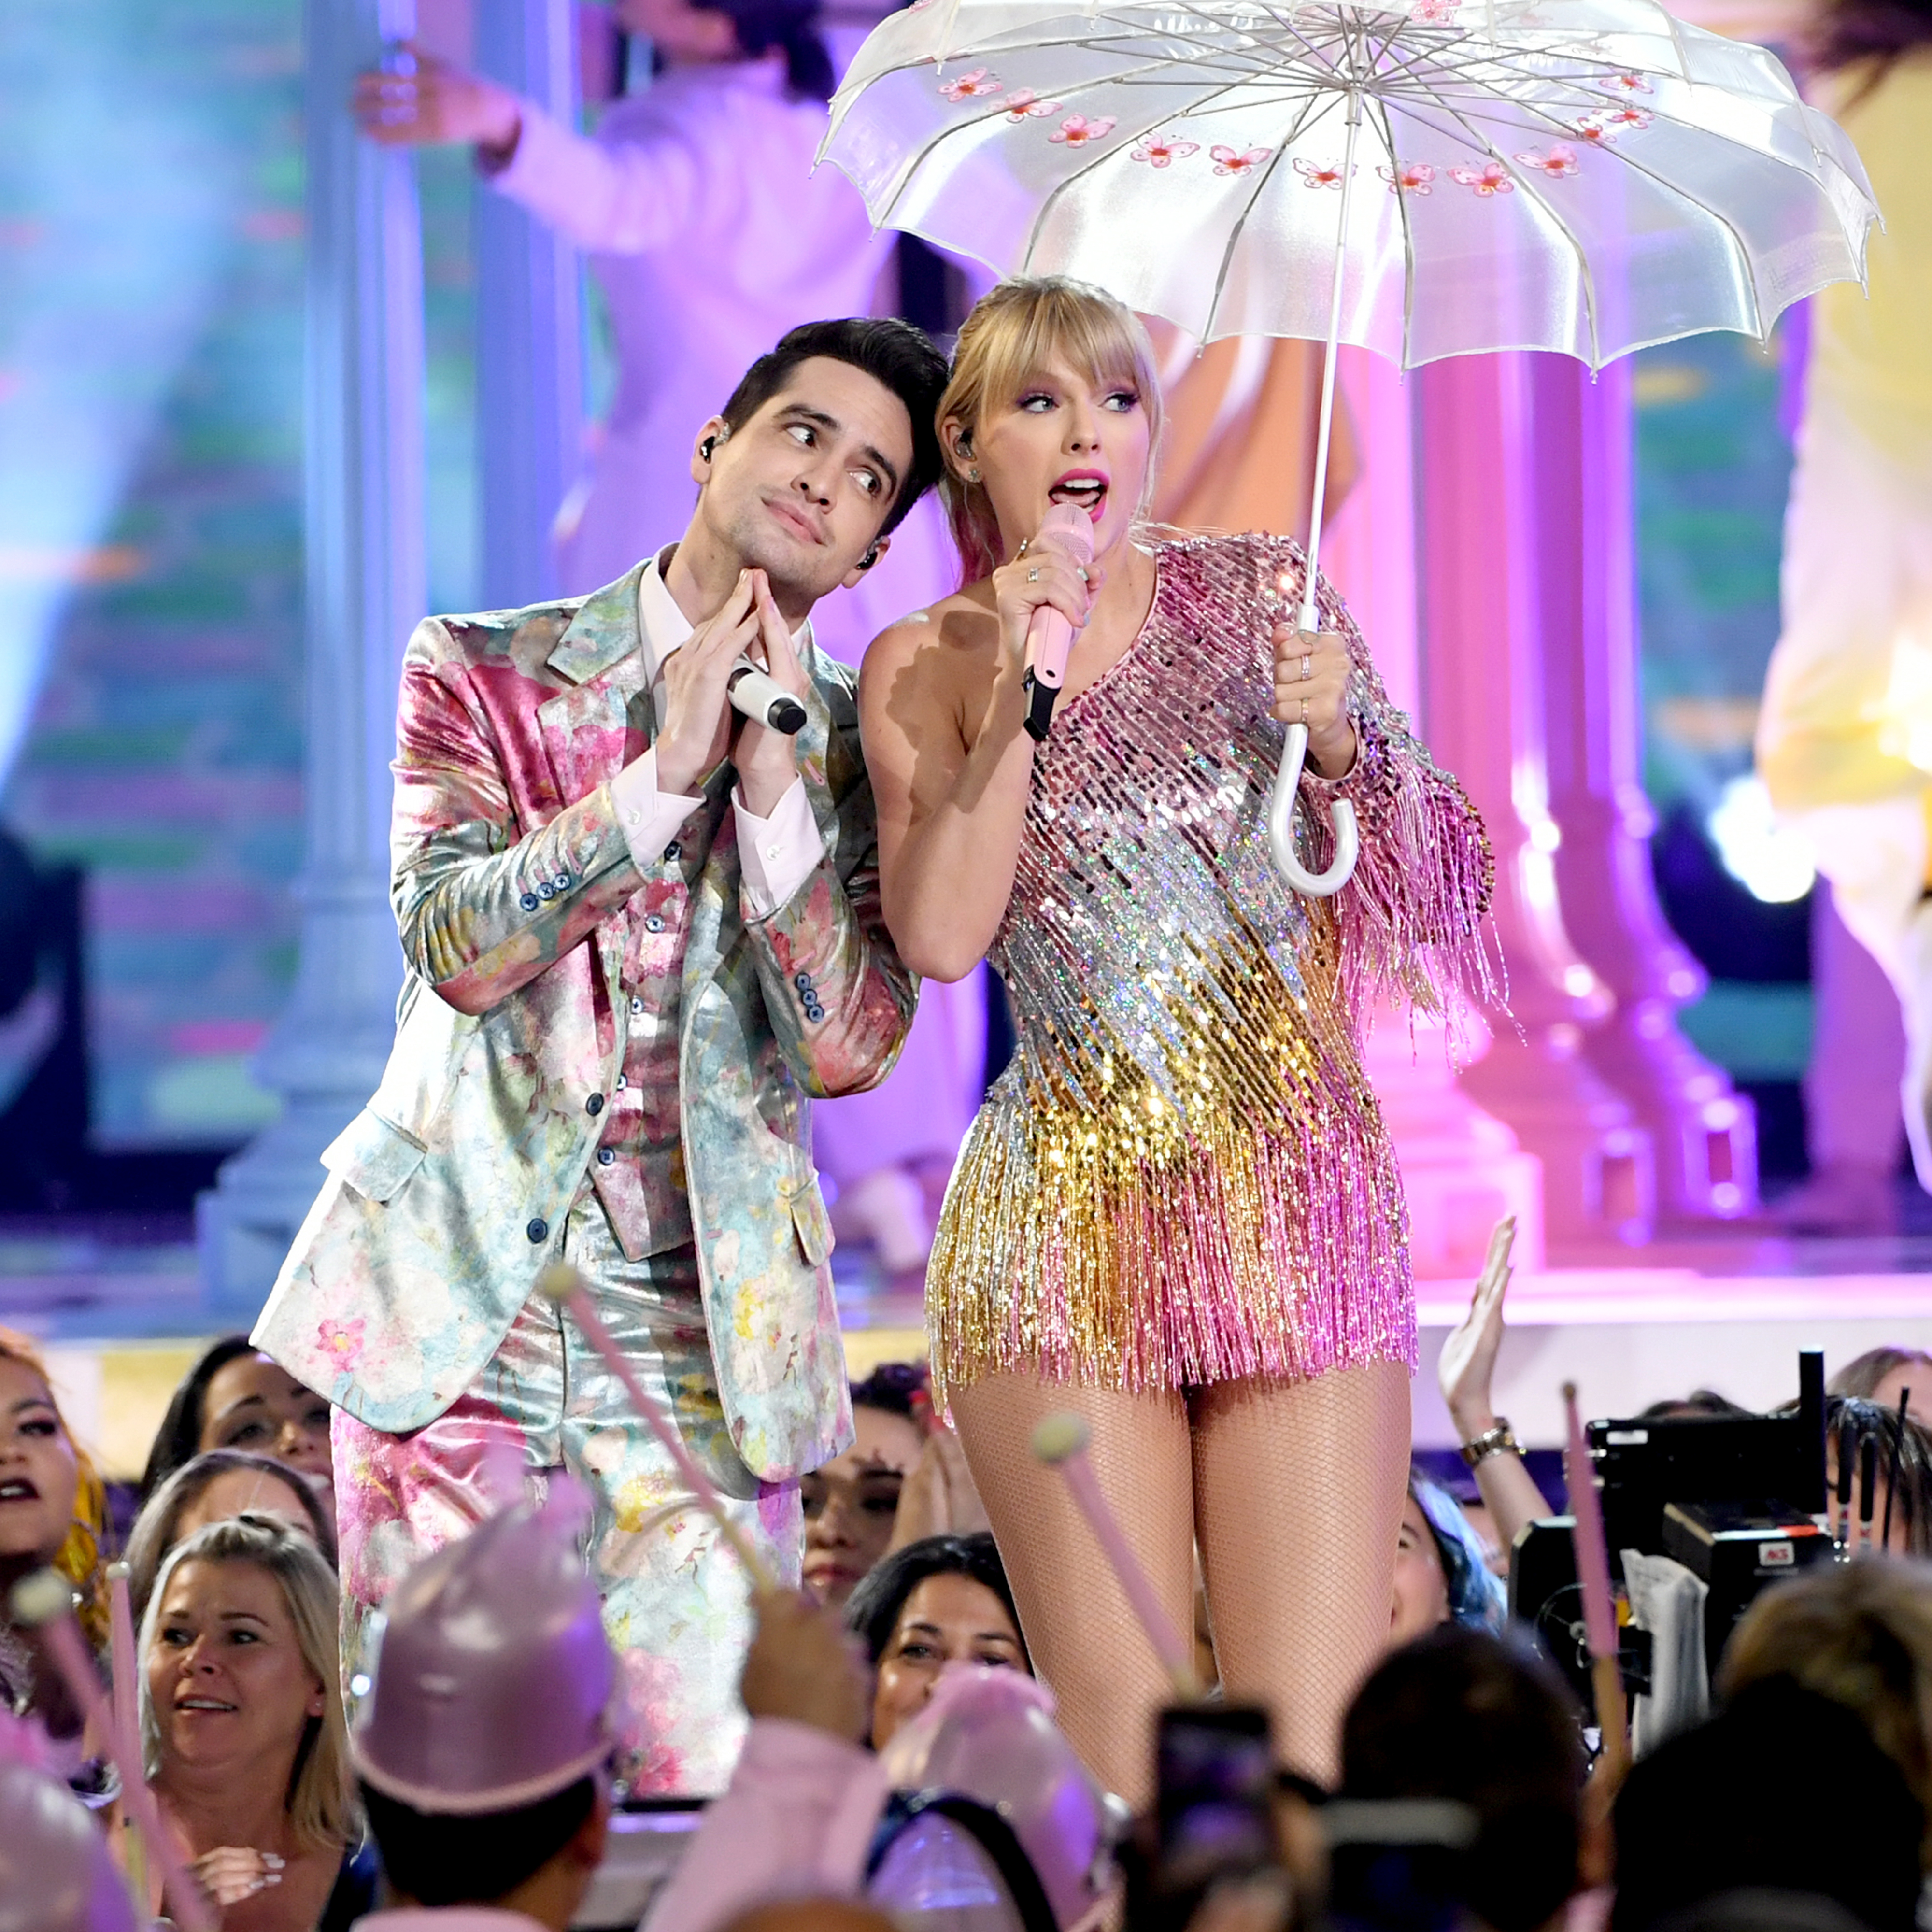 Brendon Urie of Panic! at the Disco and Taylor Swift perform onstage during the 2019 Billboard Music Awards at MGM Grand Garden Arena.